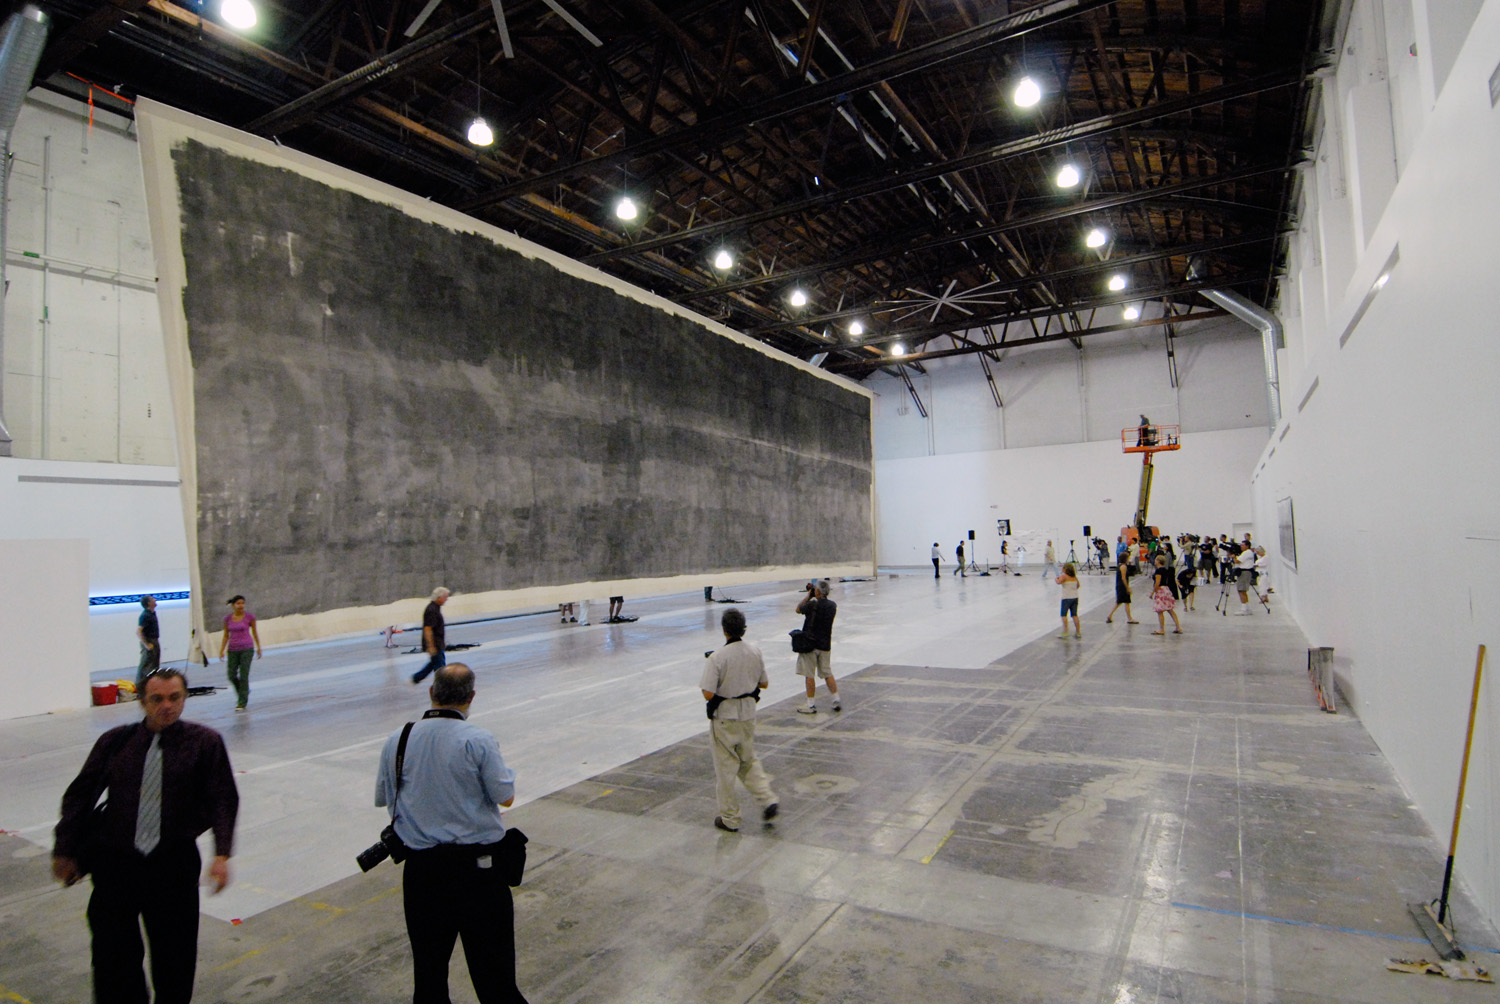 The Great Picture exhibited for the first time. There are only about 20 sites in the world large enough to display the Great Picture completely unrolled.